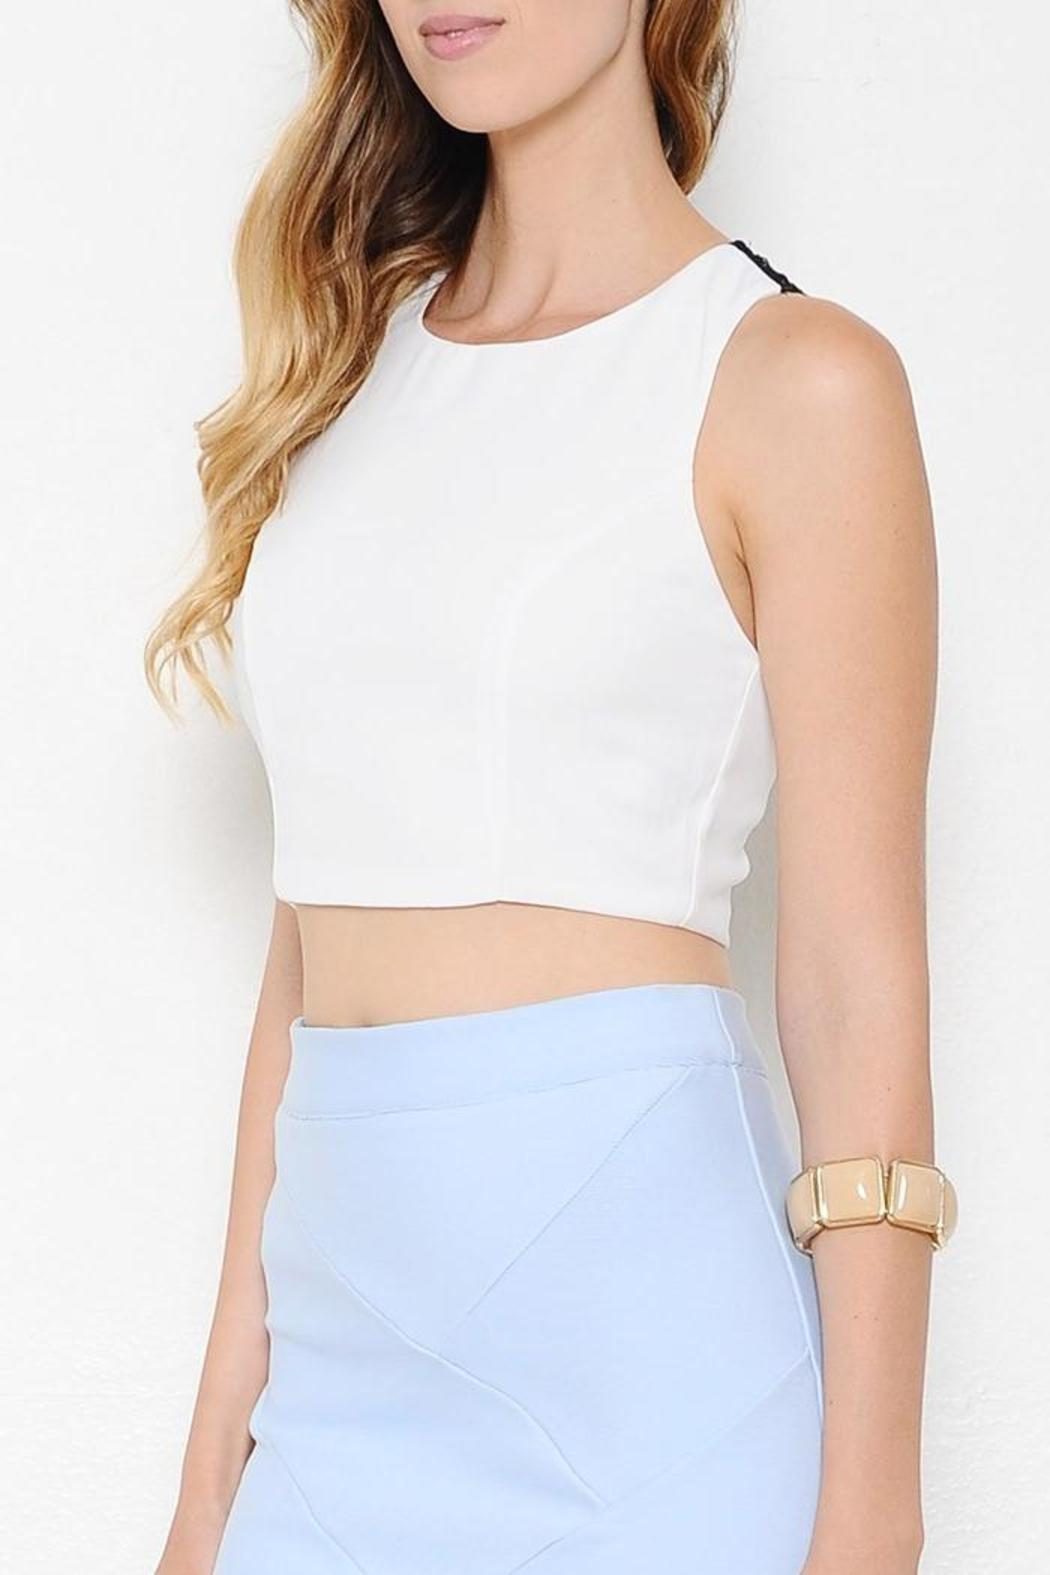 Latiste by AMY White Crop Top from Georgia by High Maintenance Dress ... 3159a7521